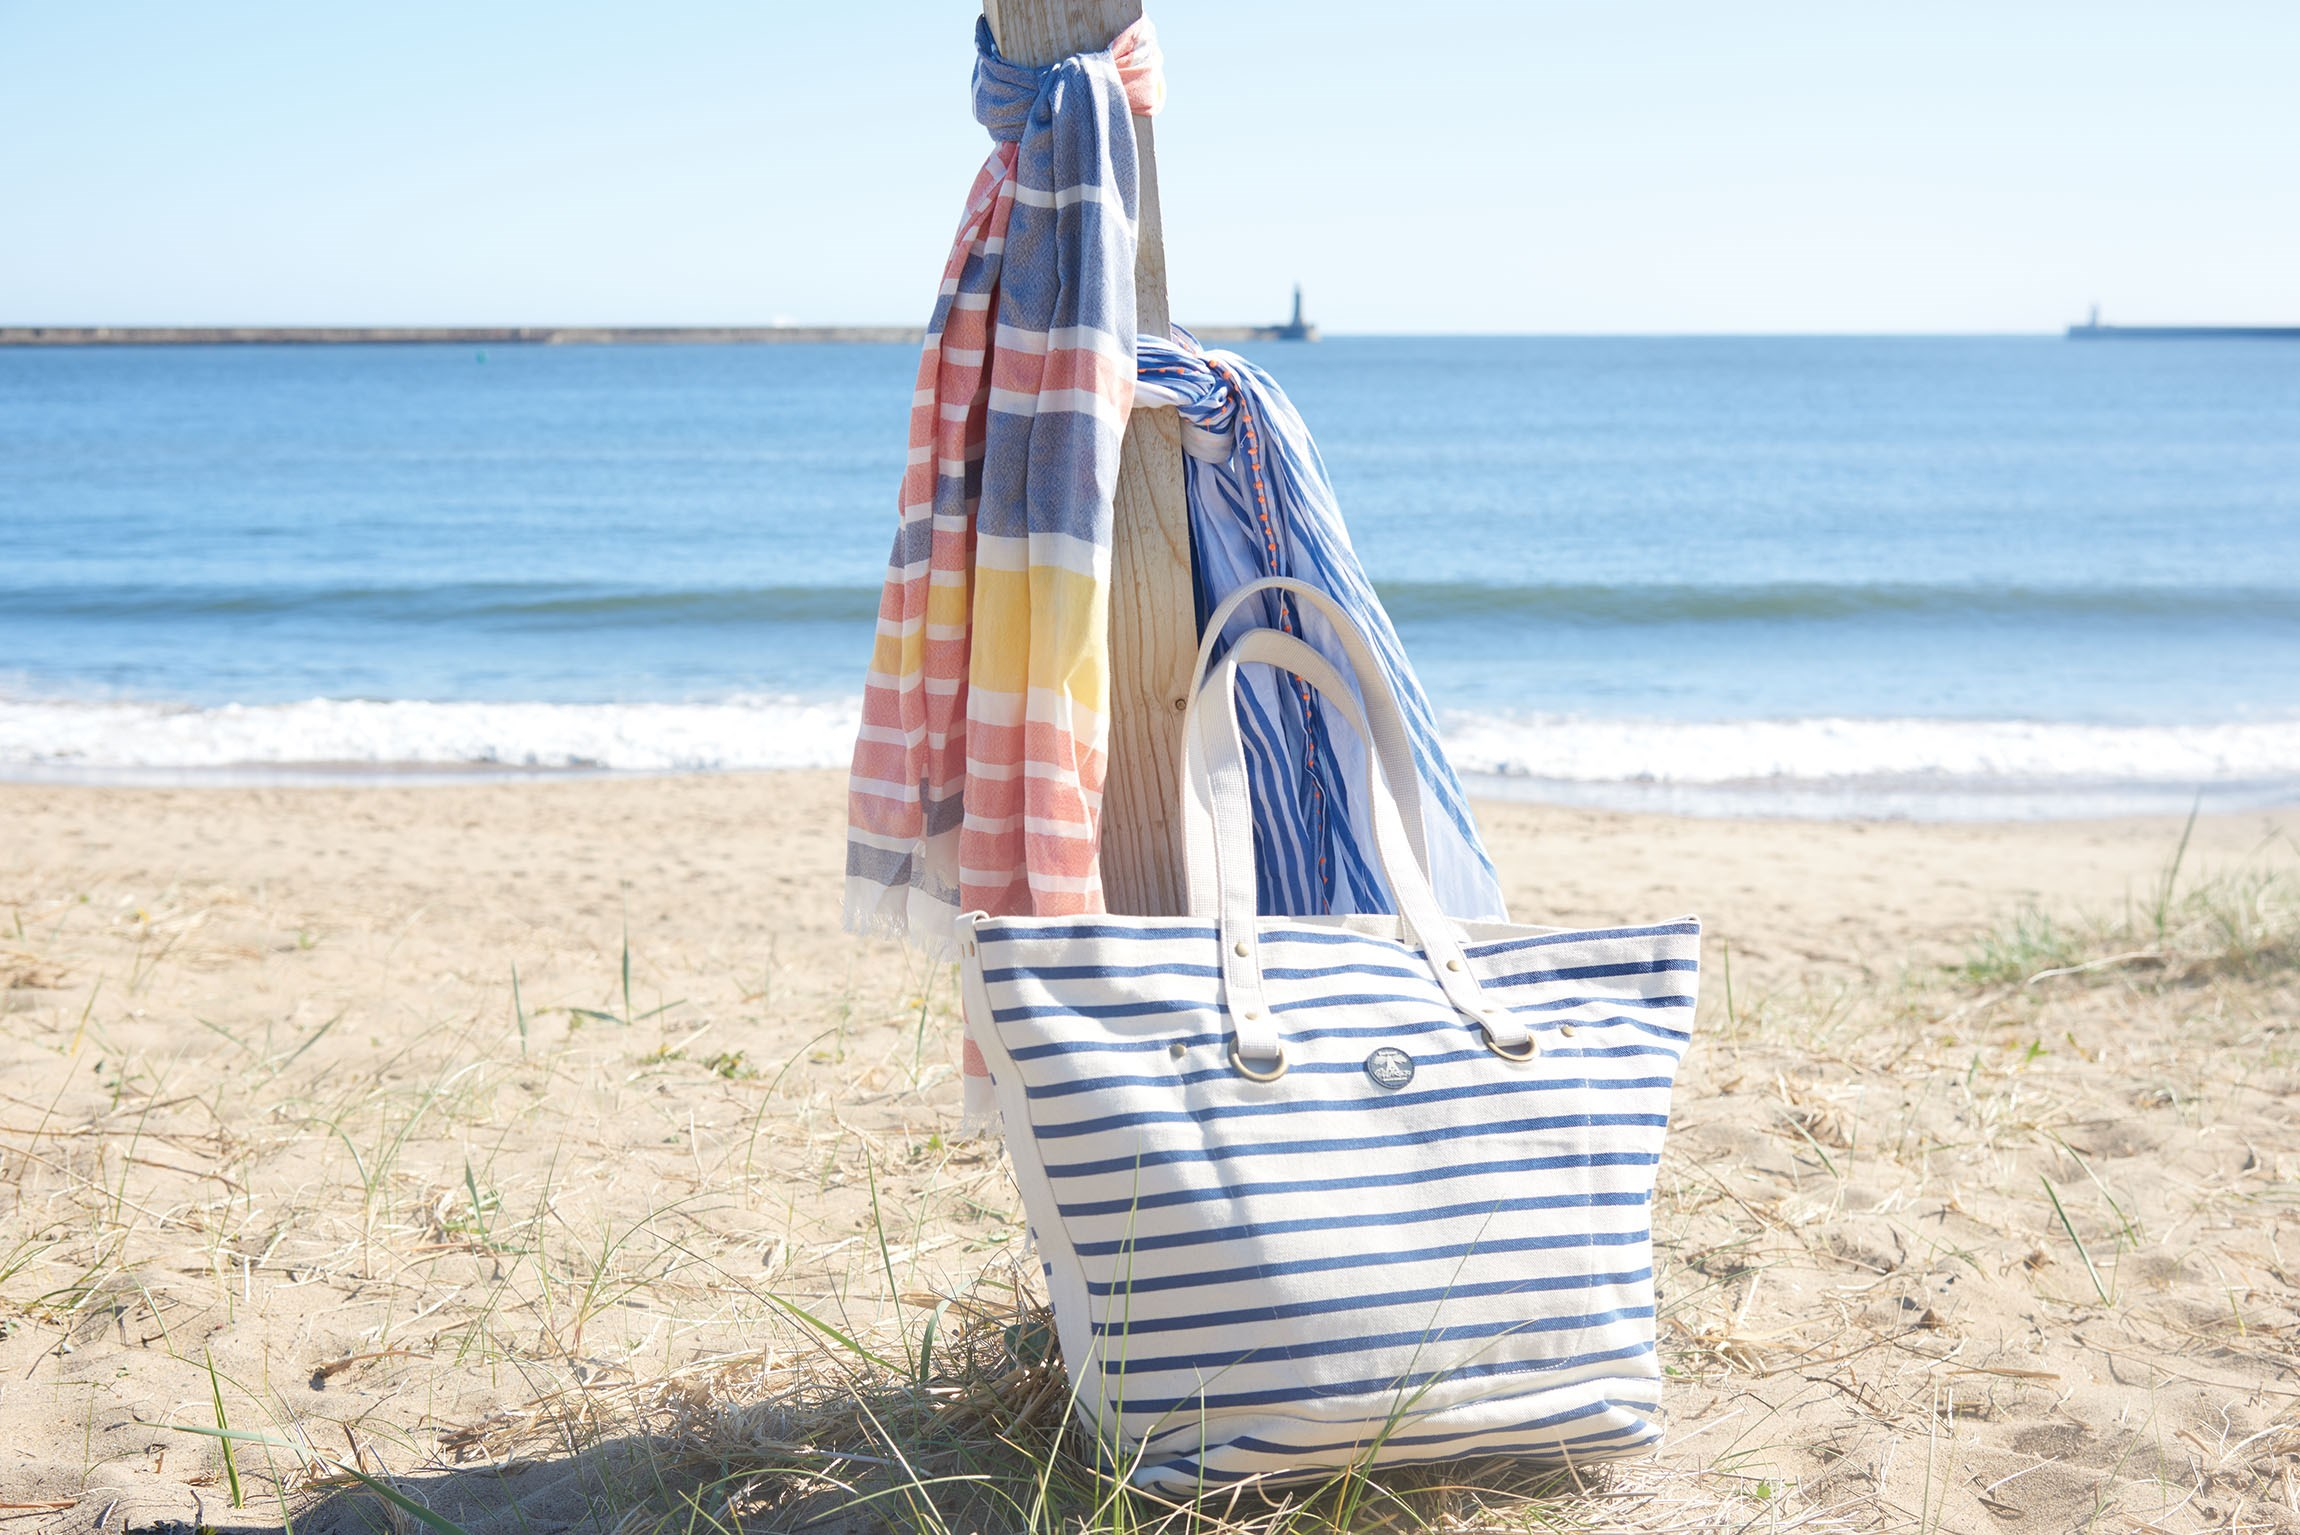 Barbour Sealand Stripe Tote LBA0250NY11 Navy Stripe Ecru Barbour Sealand Striped Wrap LSC0121BL11 Blue Marigold Stripe